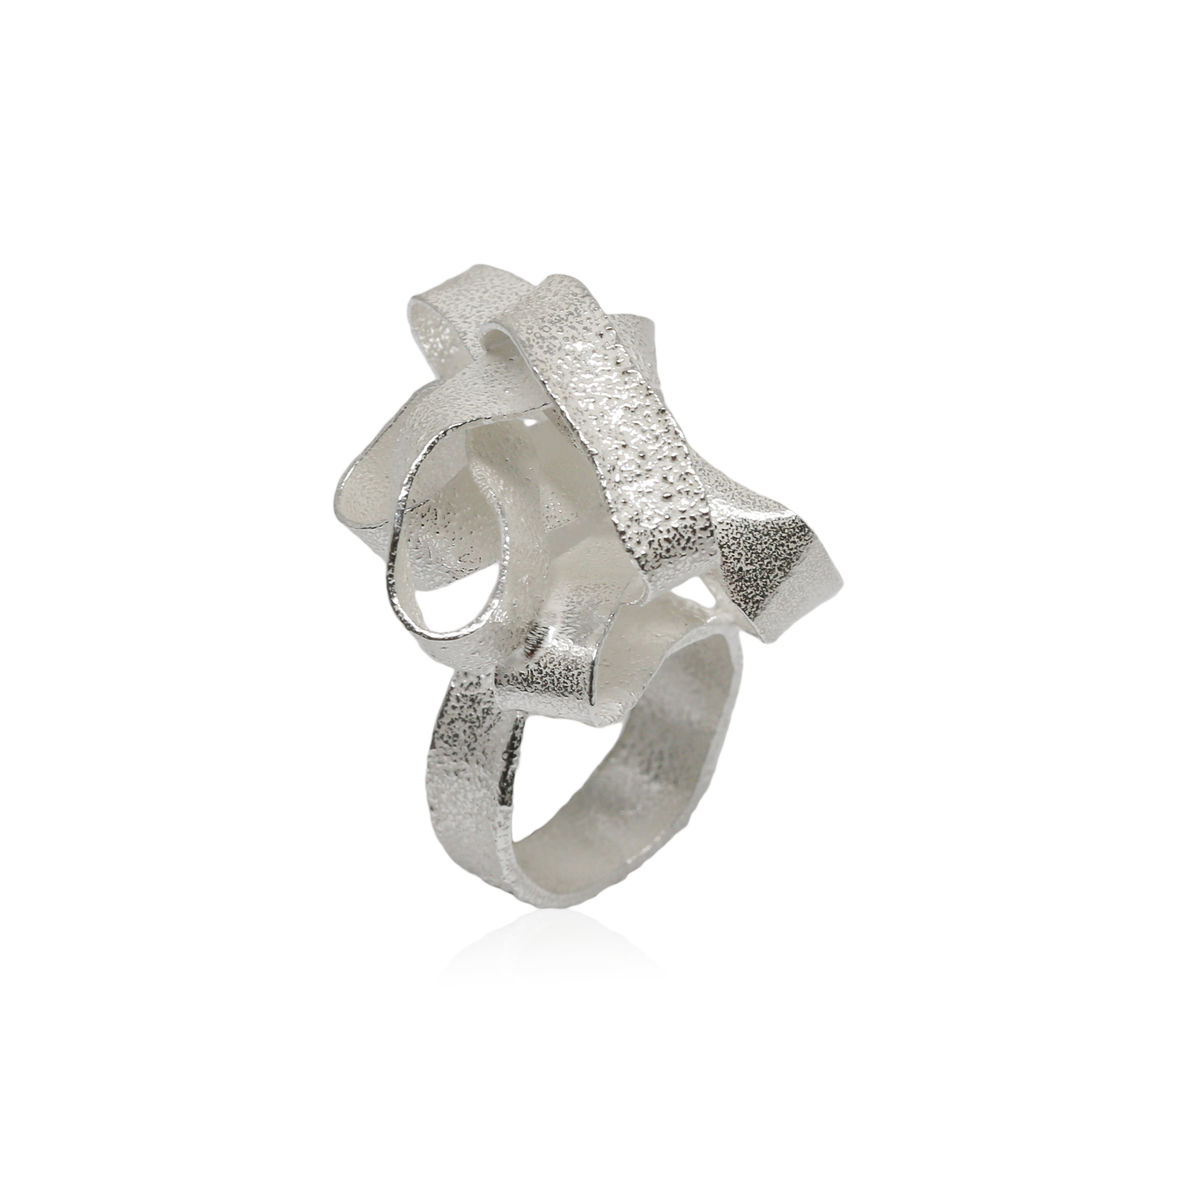 Algae Big Ring Silver - product images  of